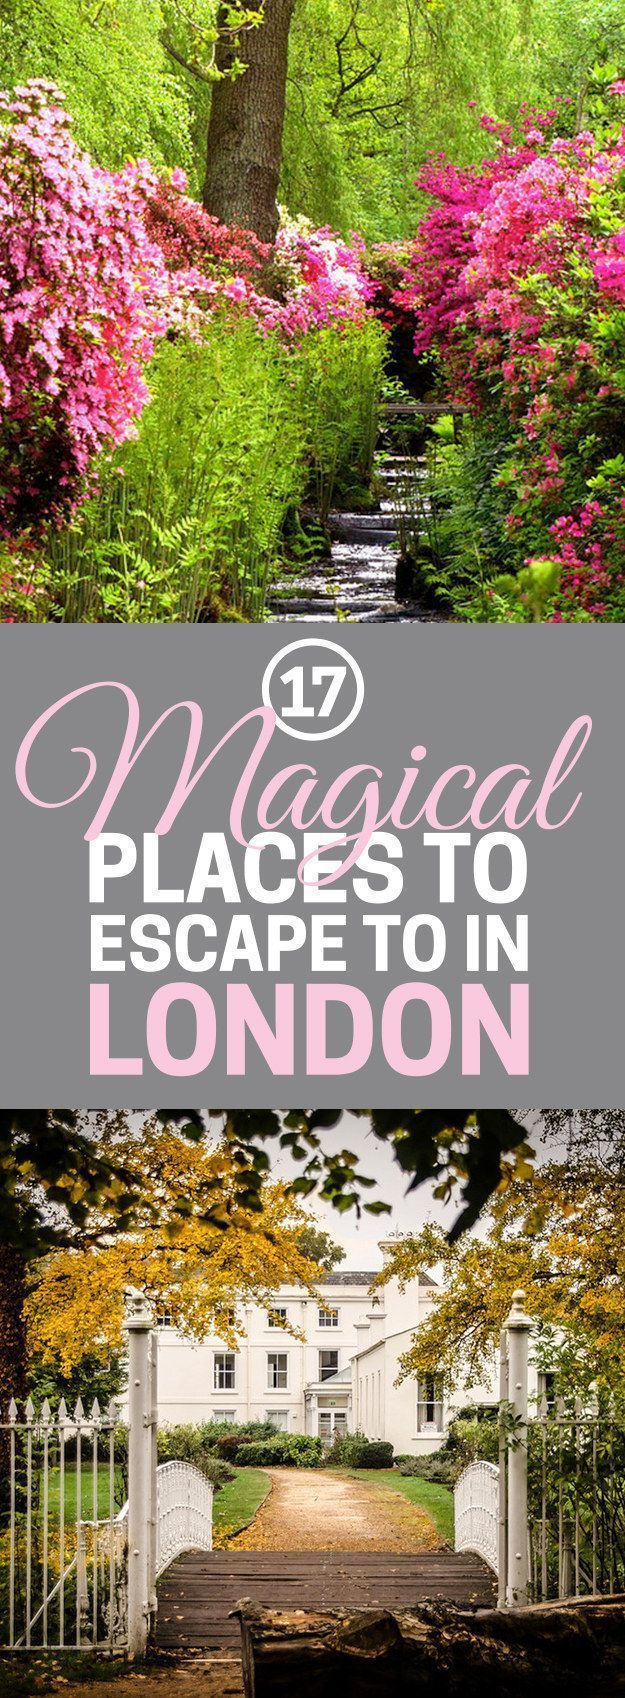 17 magische Orte in #London | Kolumbus Sprachreisen https://www.kolumbus-sprachreisen.de/sprachreisen/erwachsene/englisch/england/london-camden/sprachreisen-london-camden